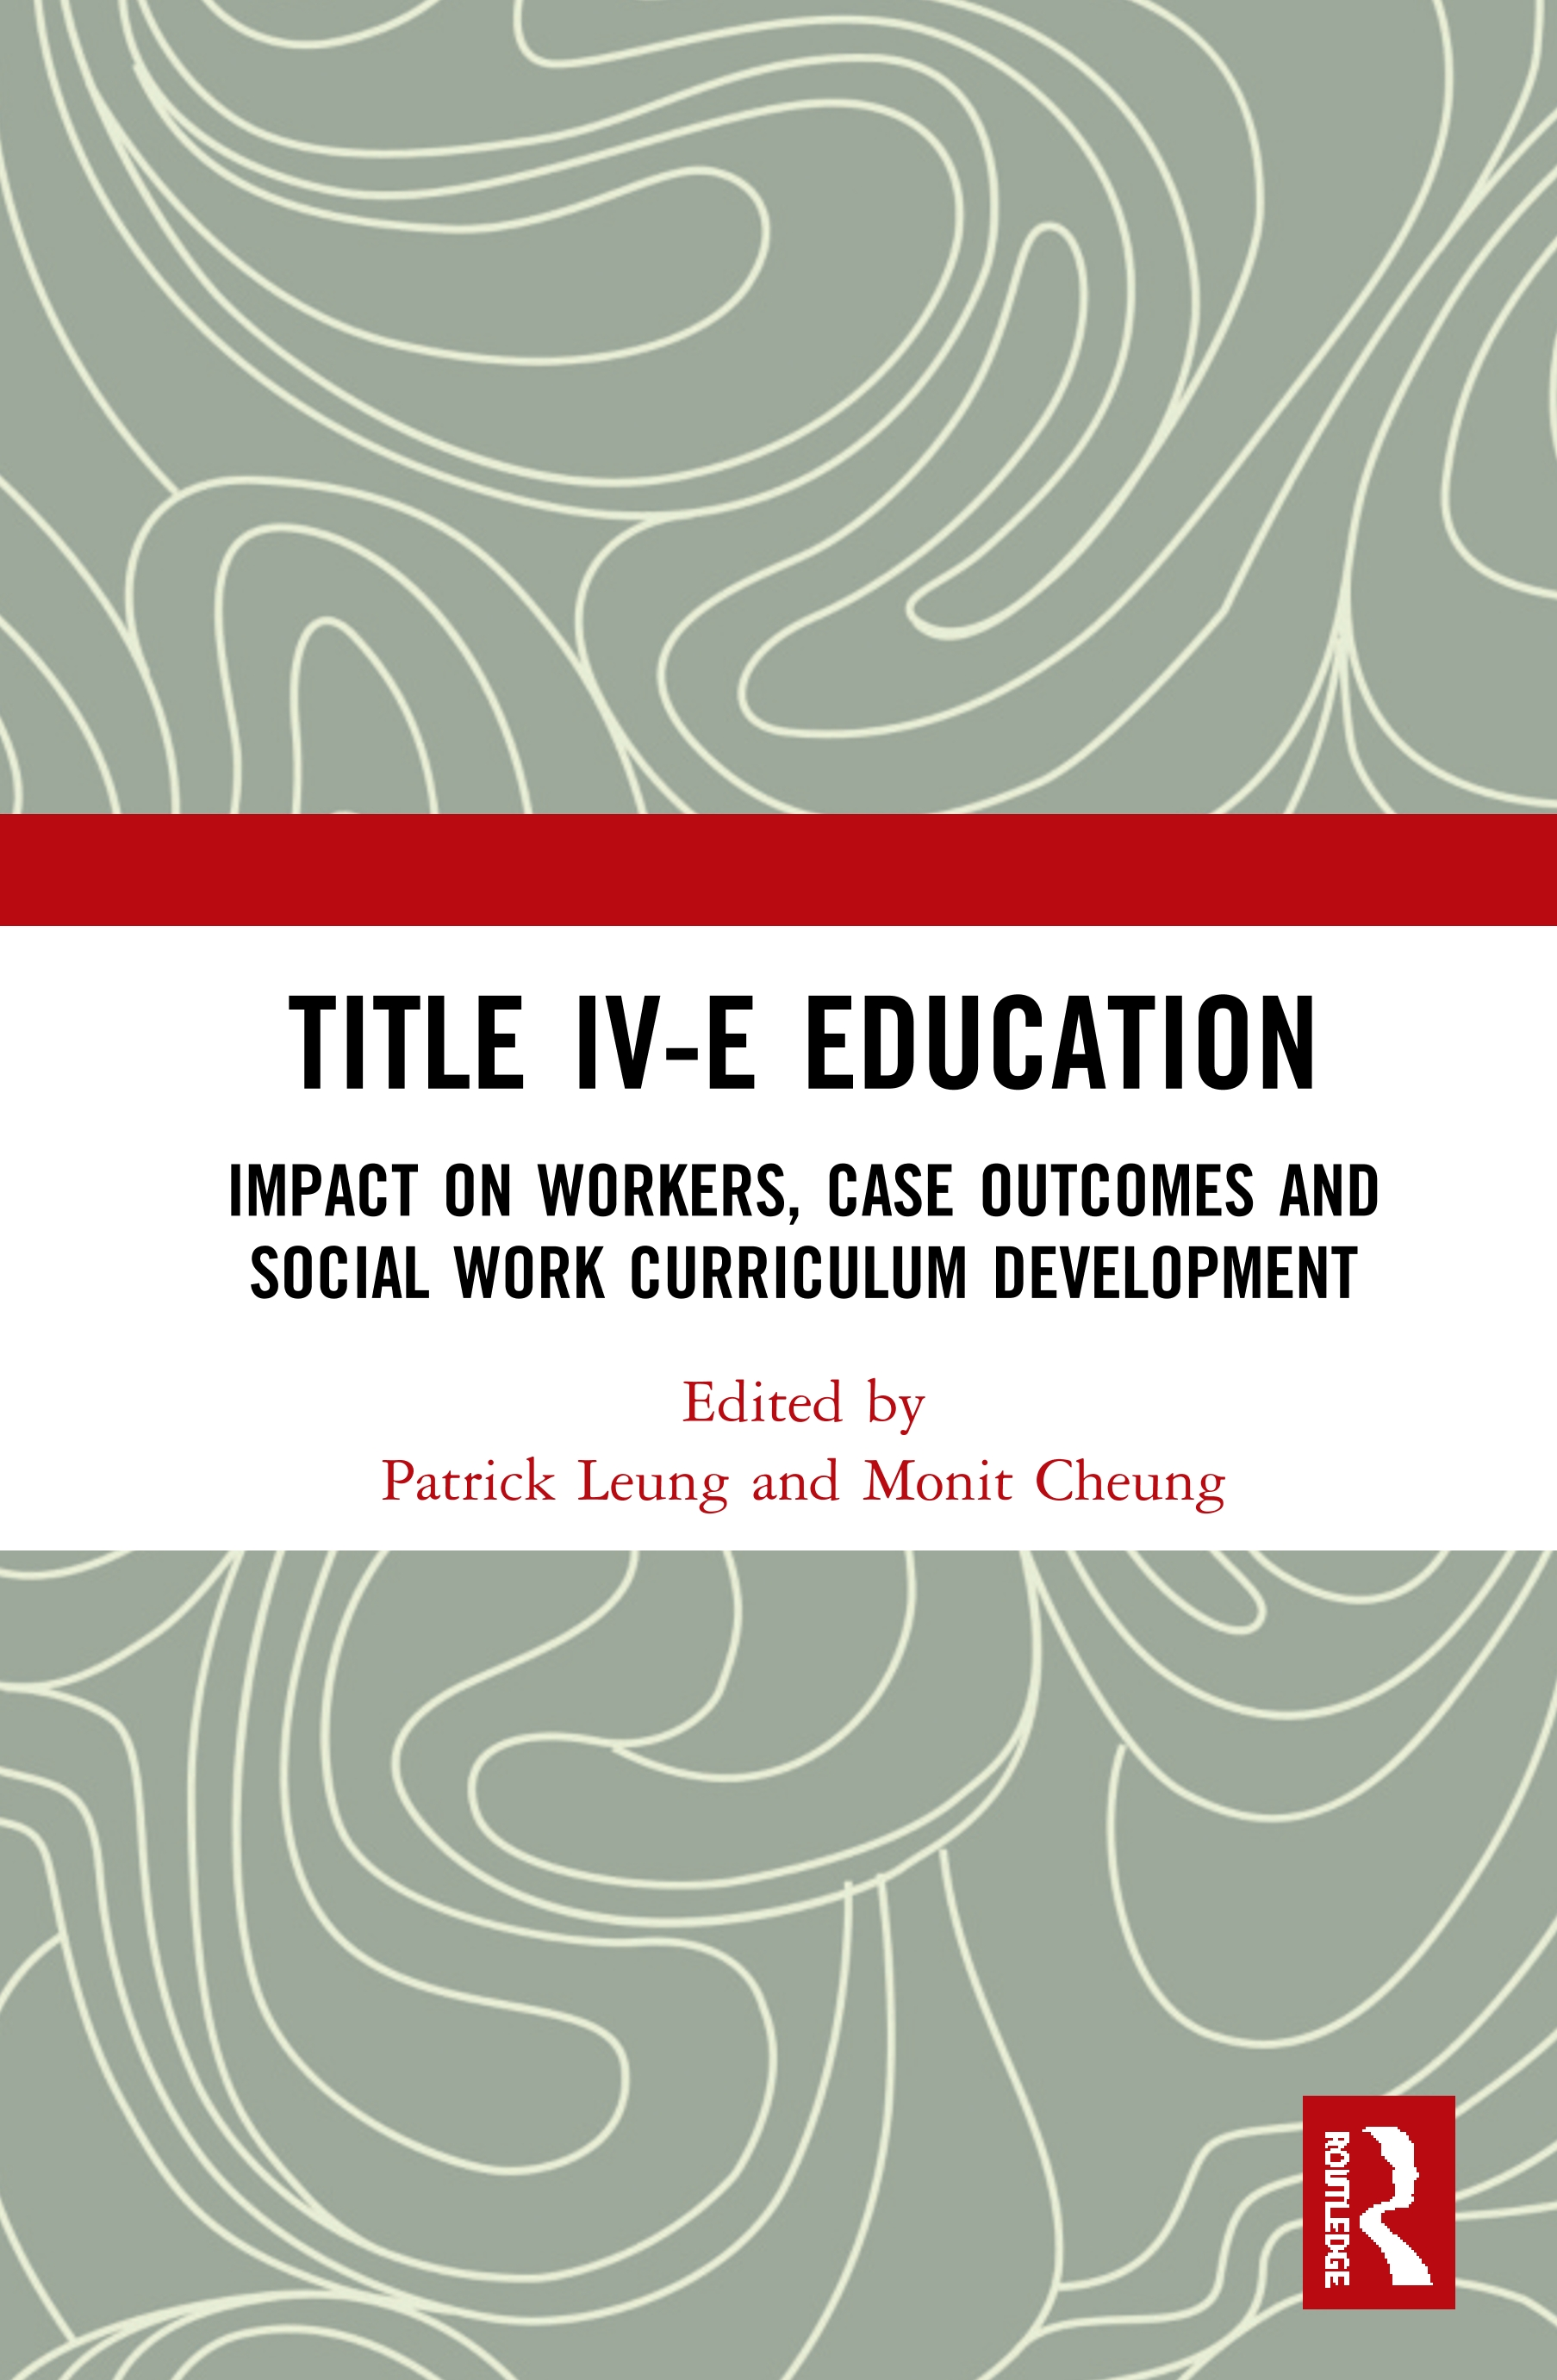 Title IV-E Child Welfare Education: Impact on Workers, Case Outcomes and Social Work Curriculum Development book cover